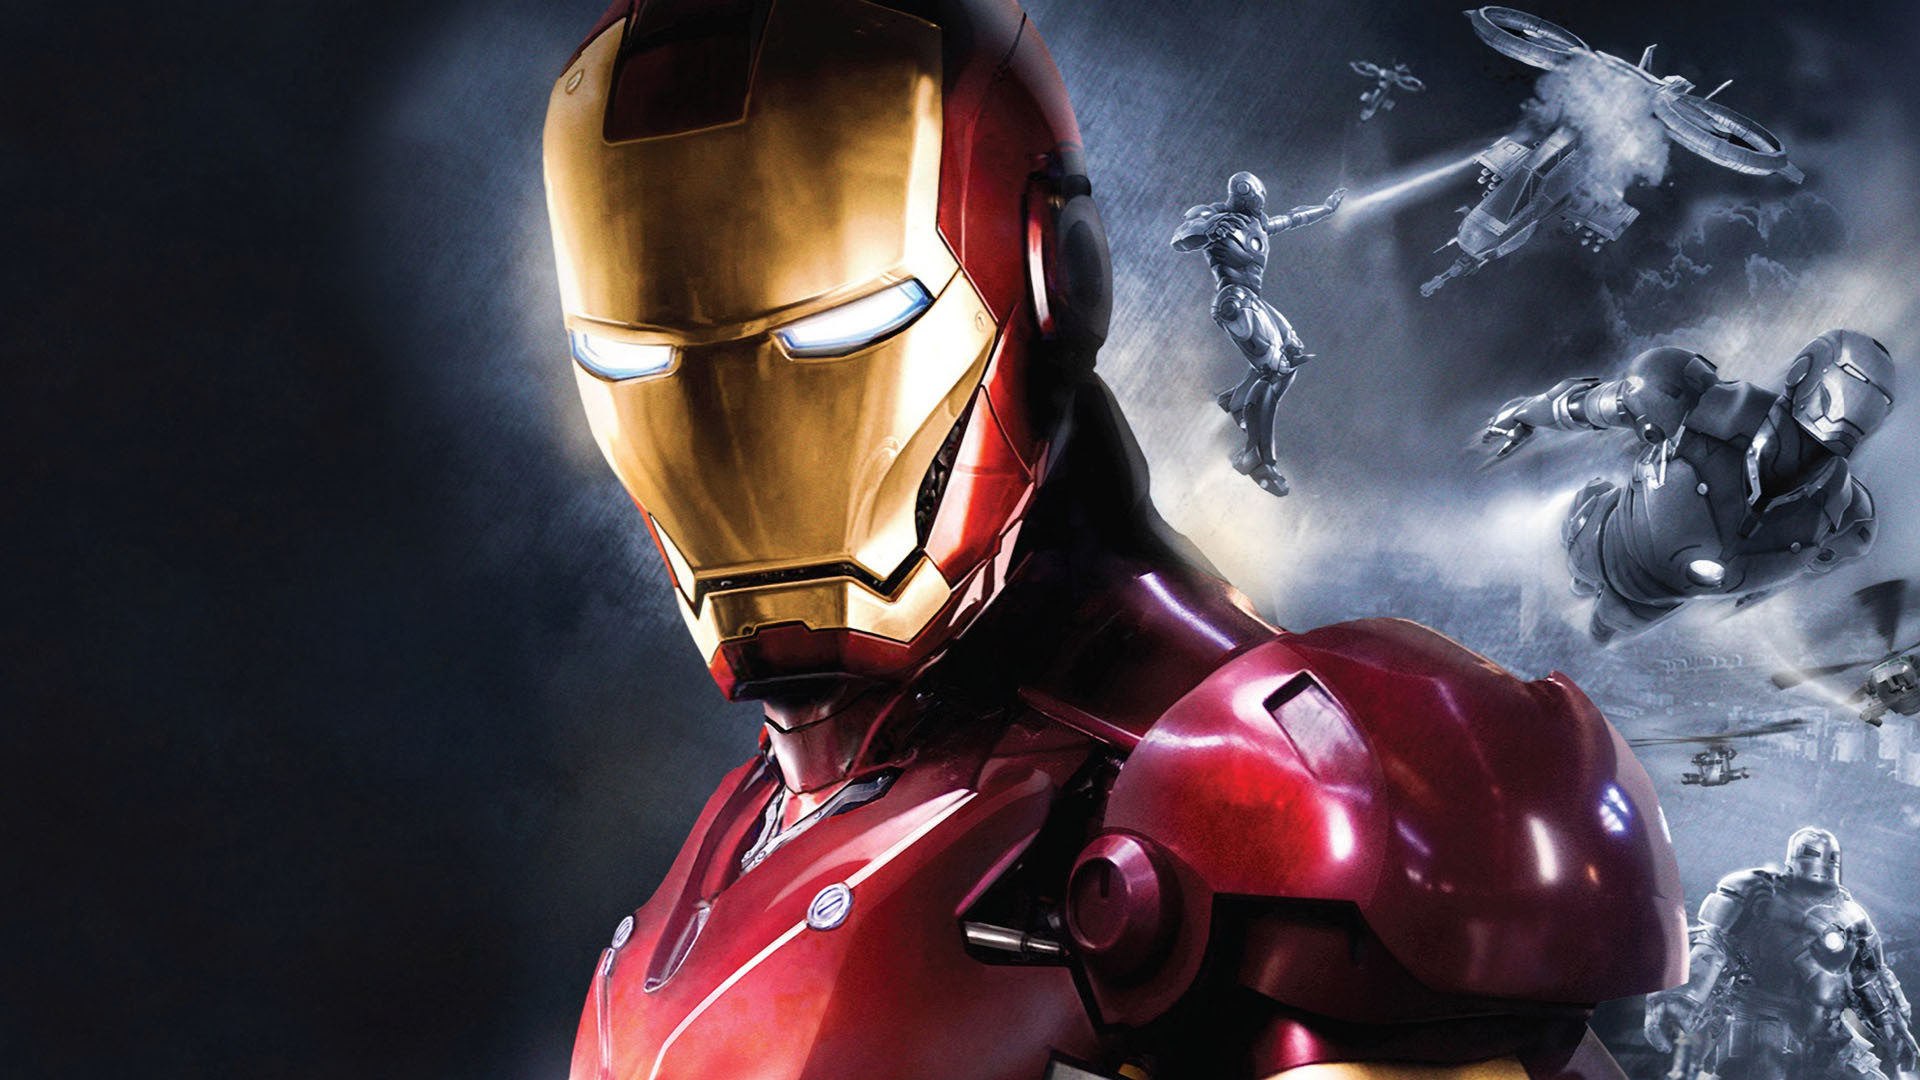 Wallpaper iron man hd gratuit t l charger sur ngn mag for Maison d iron man